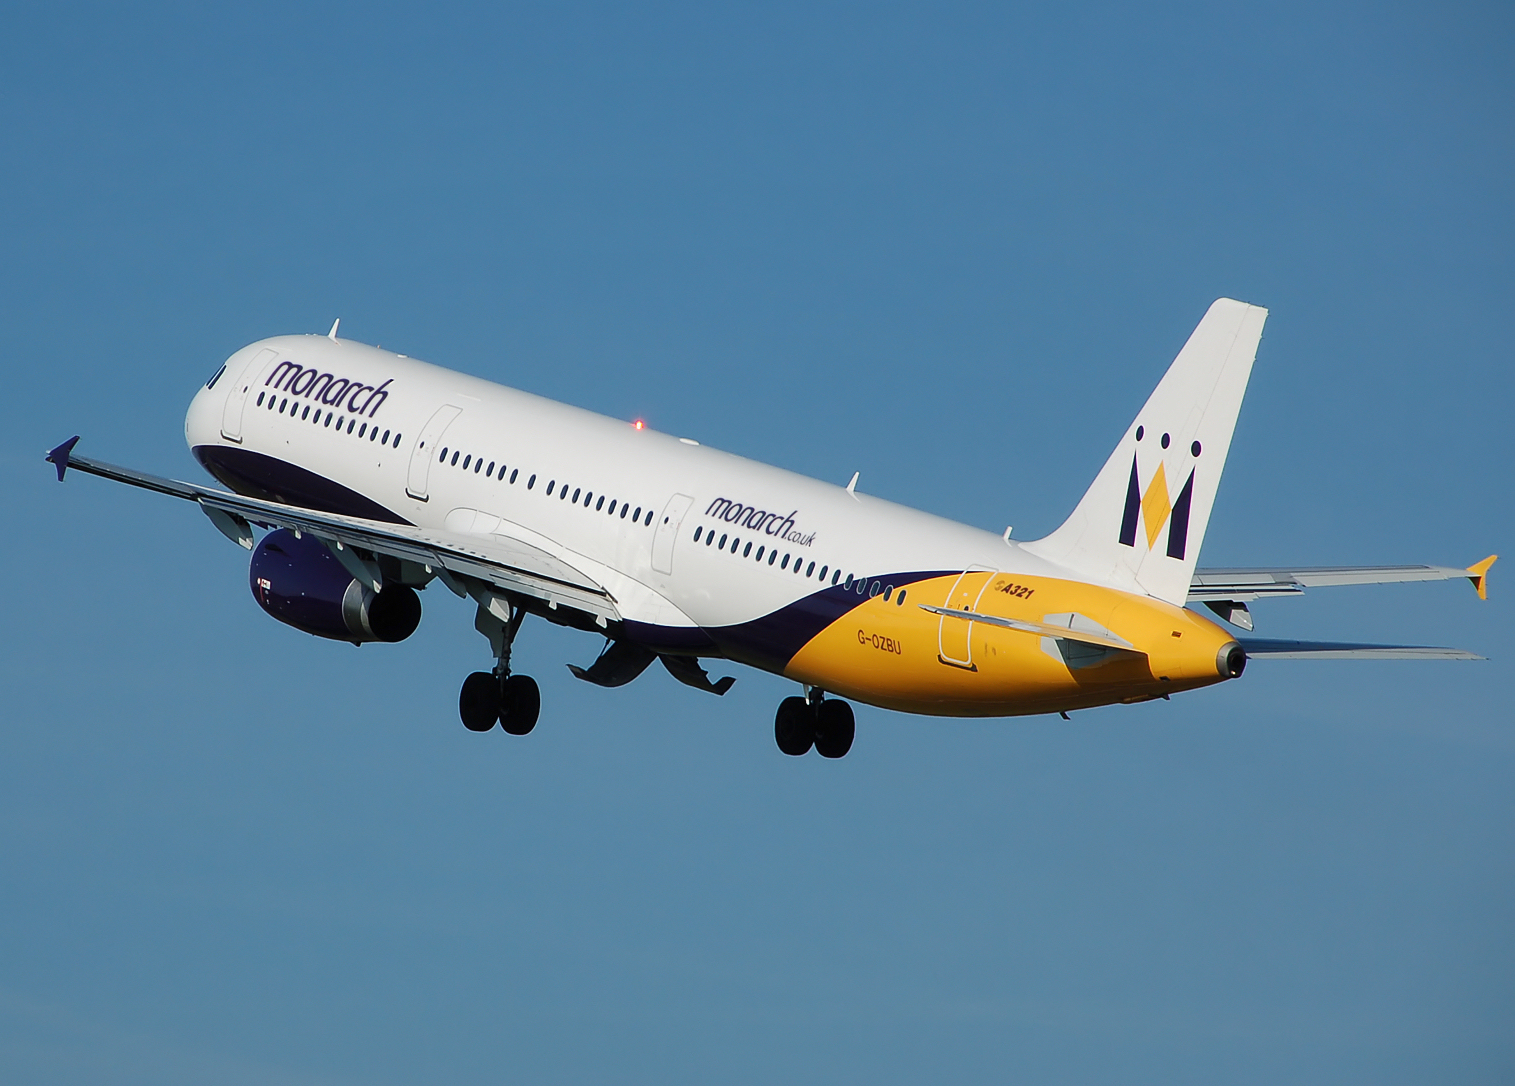 Monarch_a321-200_g-ozbu_takeoff_from_manchester_arp